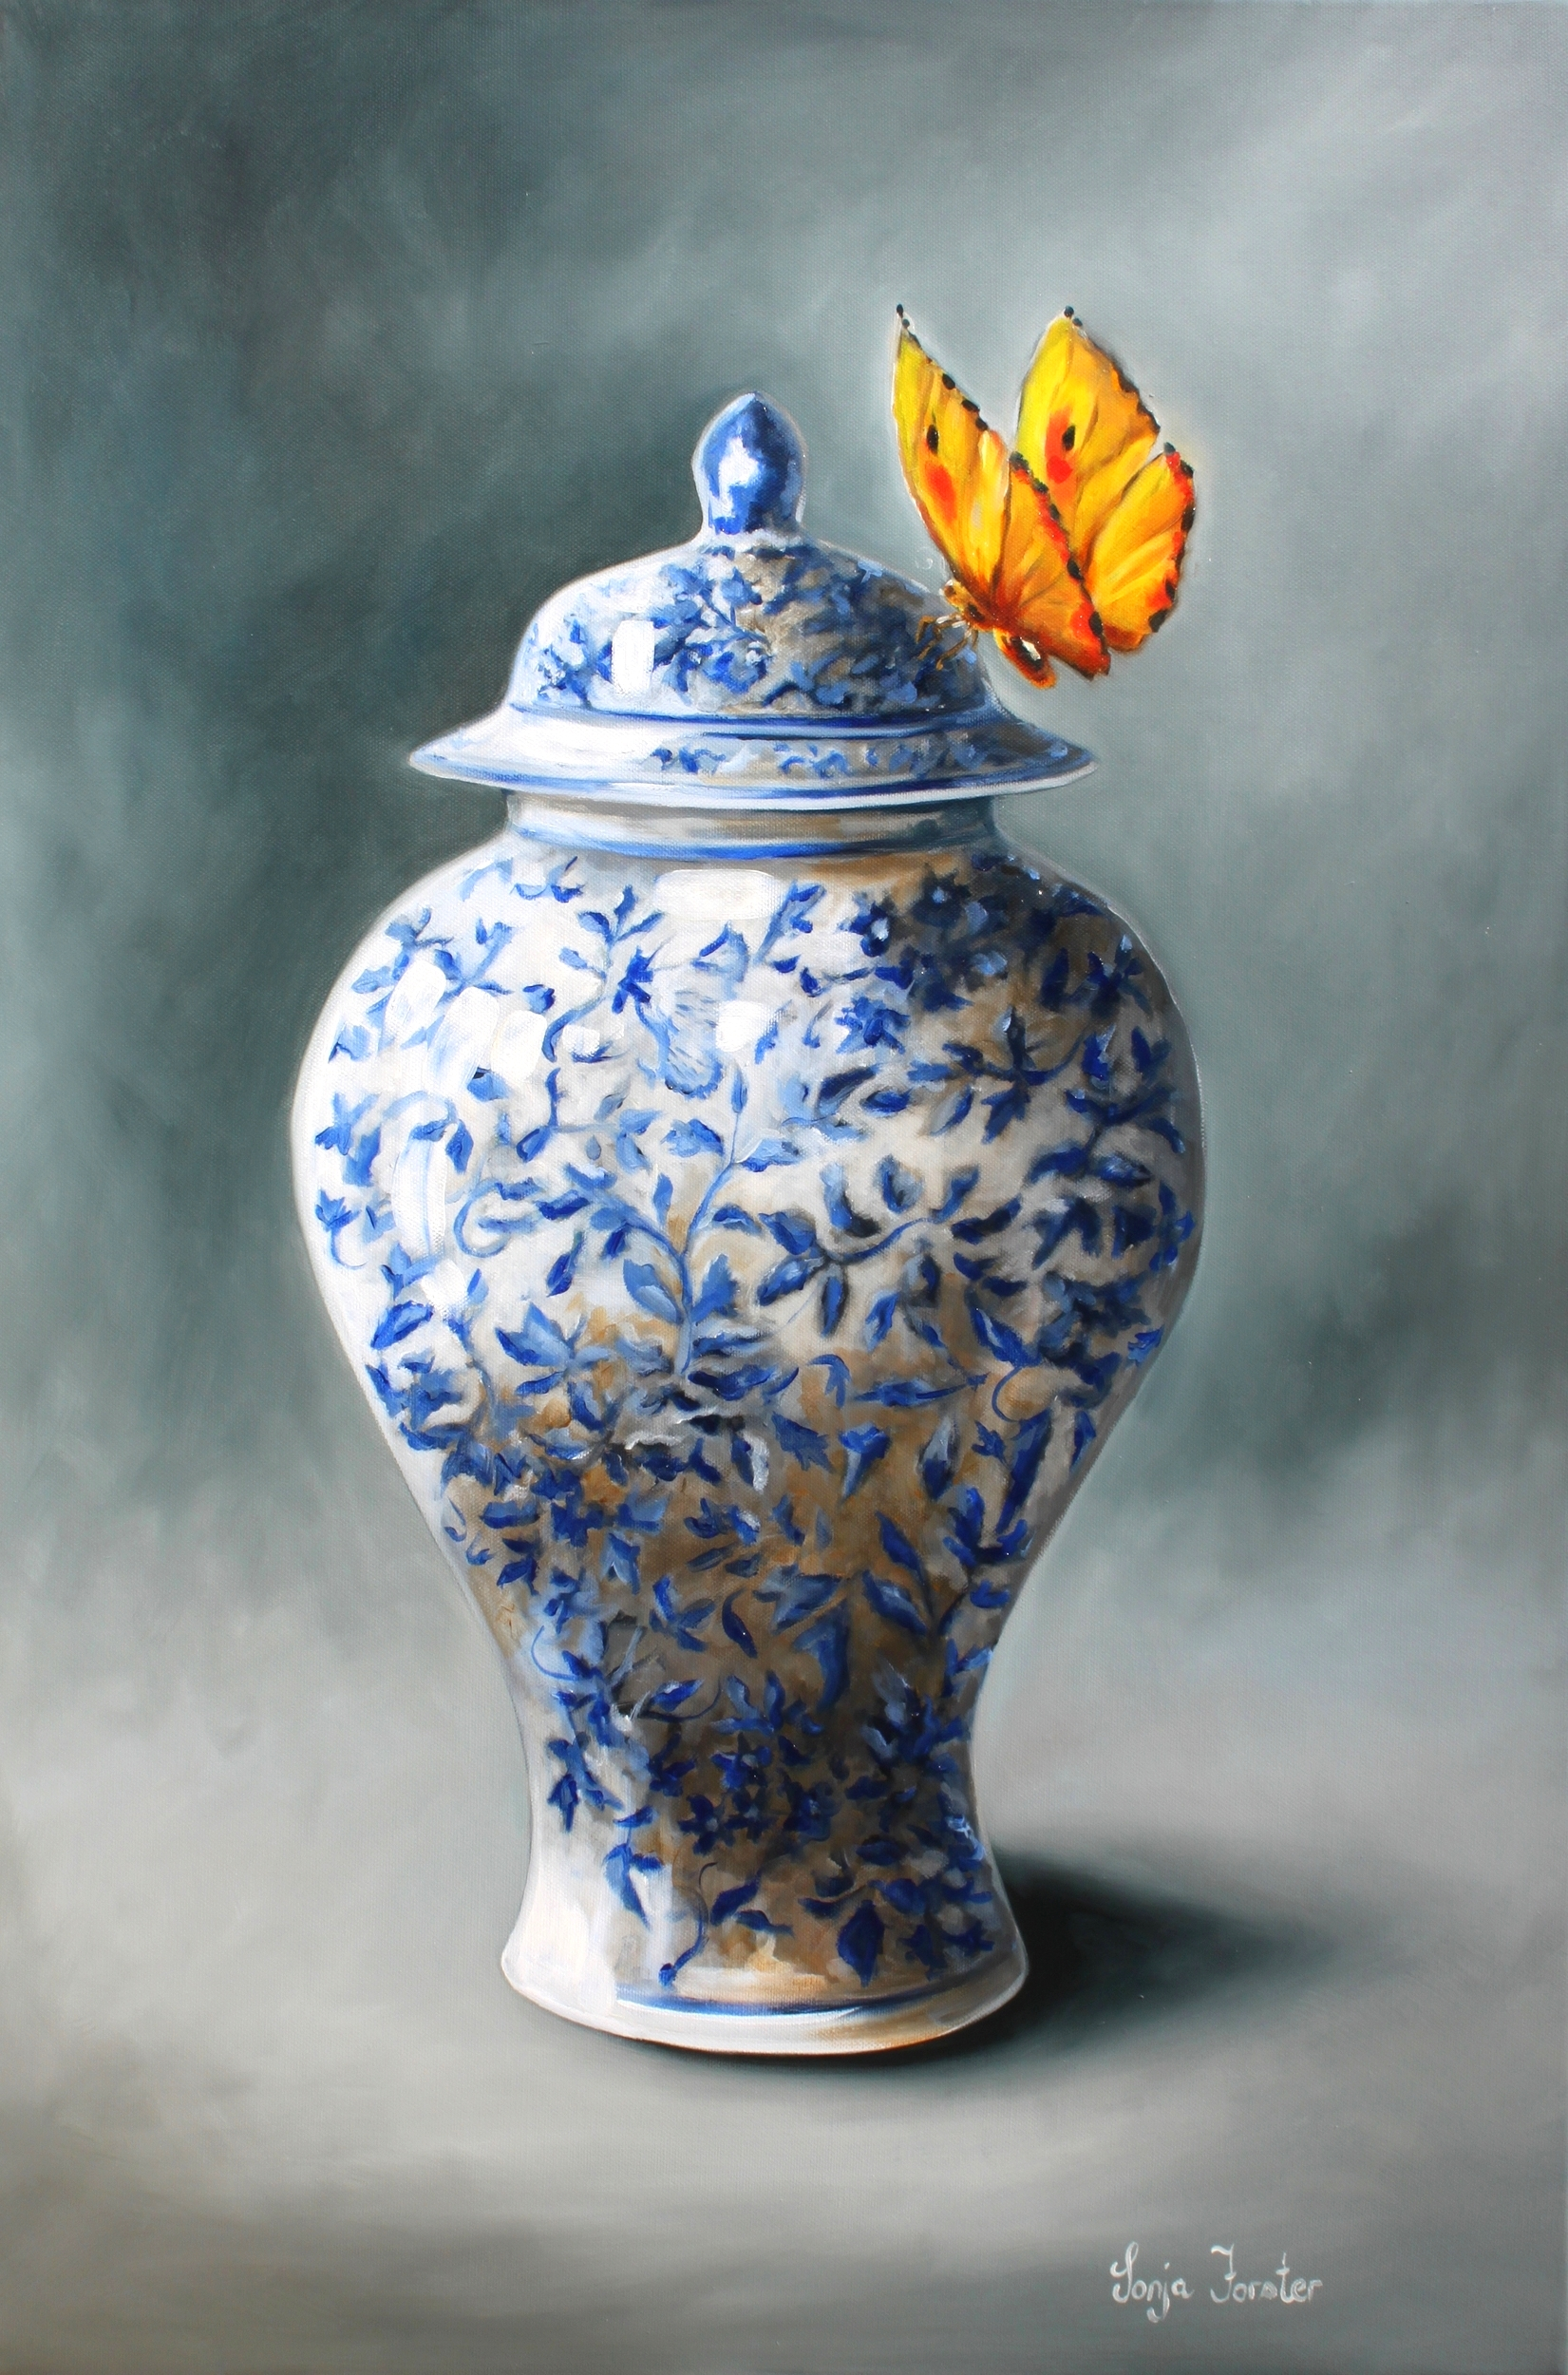 Sonja Forster Art - Blue and White Ceramic Pot - Oil on Canvas.jpg